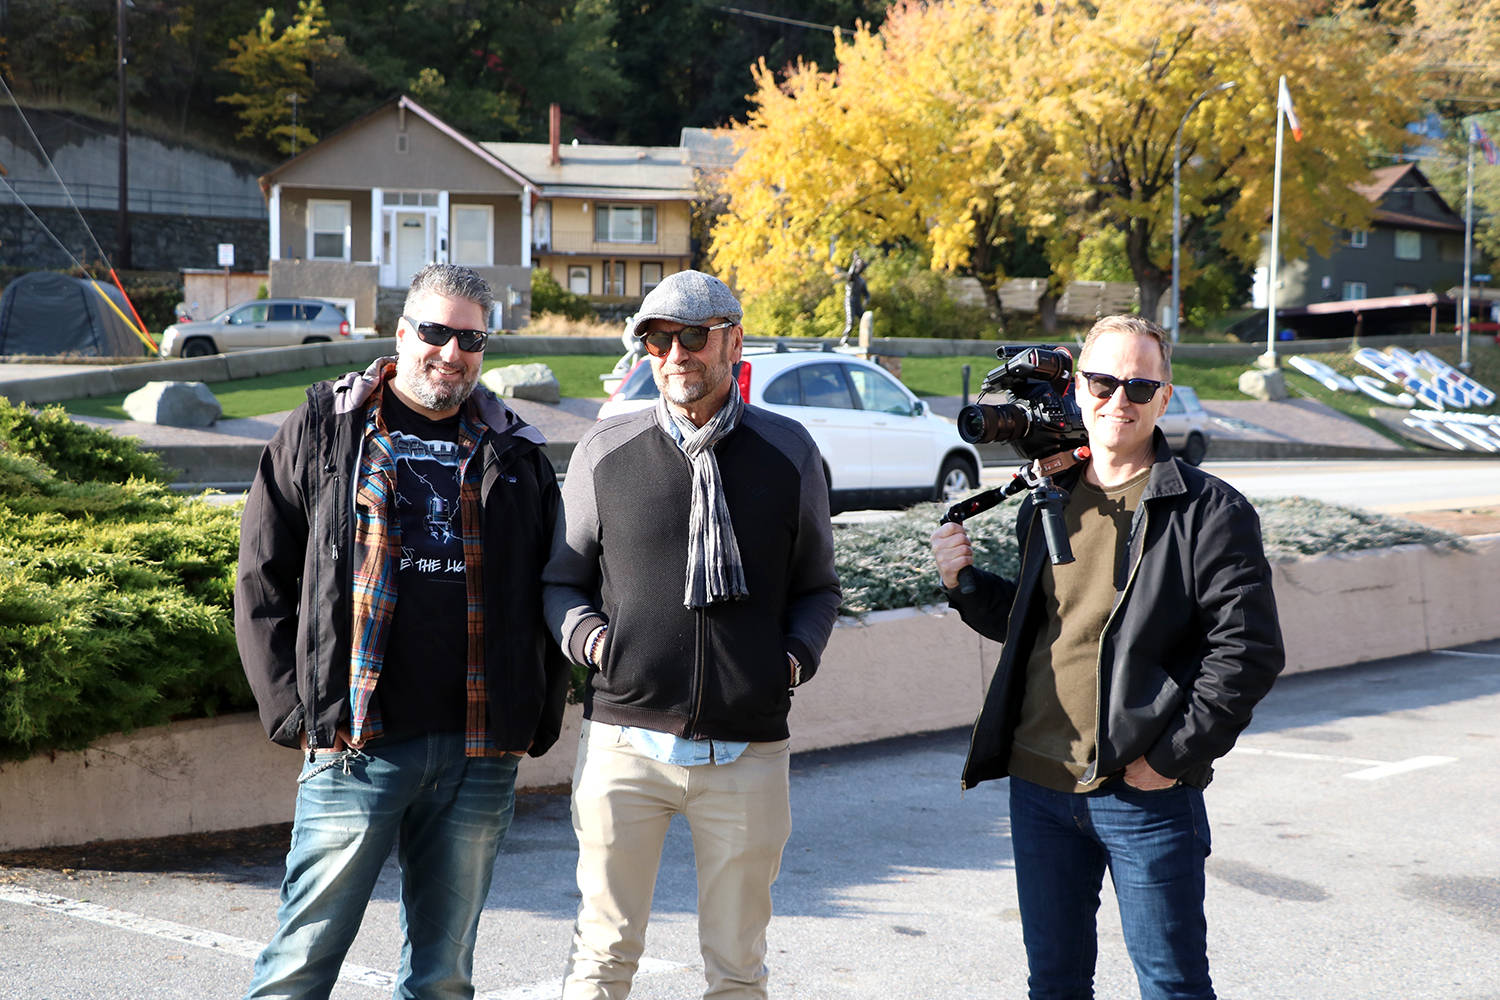 """""""Trophy Town"""" filmmakers were in Trail filming a documentary on the '39 and '61 Trail Smoke Eaters. From left writer/producer Dave Alexander, director/producer/cameraman Robert Barrett, and cinematographer/cameraman David Cain."""